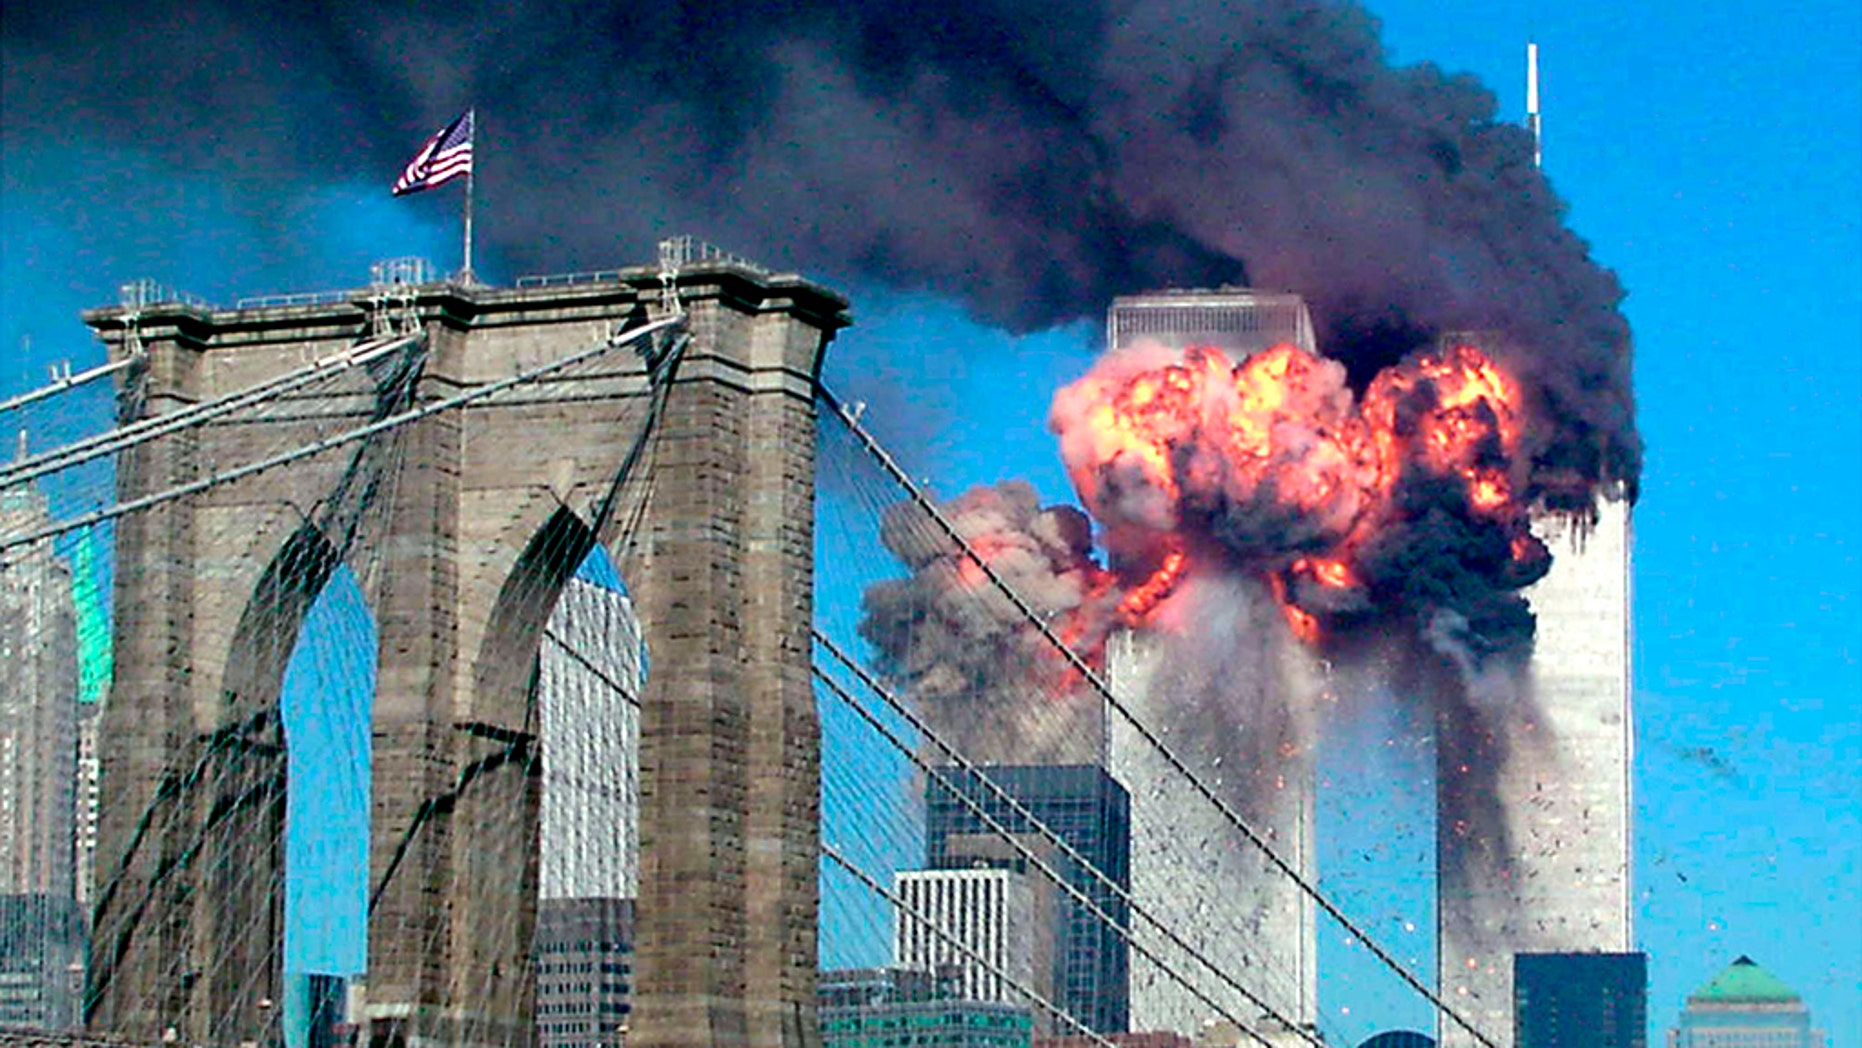 The medical examiner's office in New York reportedly revealed Wednesday that they've identified the remains of a man killed more than a decade ago in the World Trade Center attack on Sept. 11th, 2001.